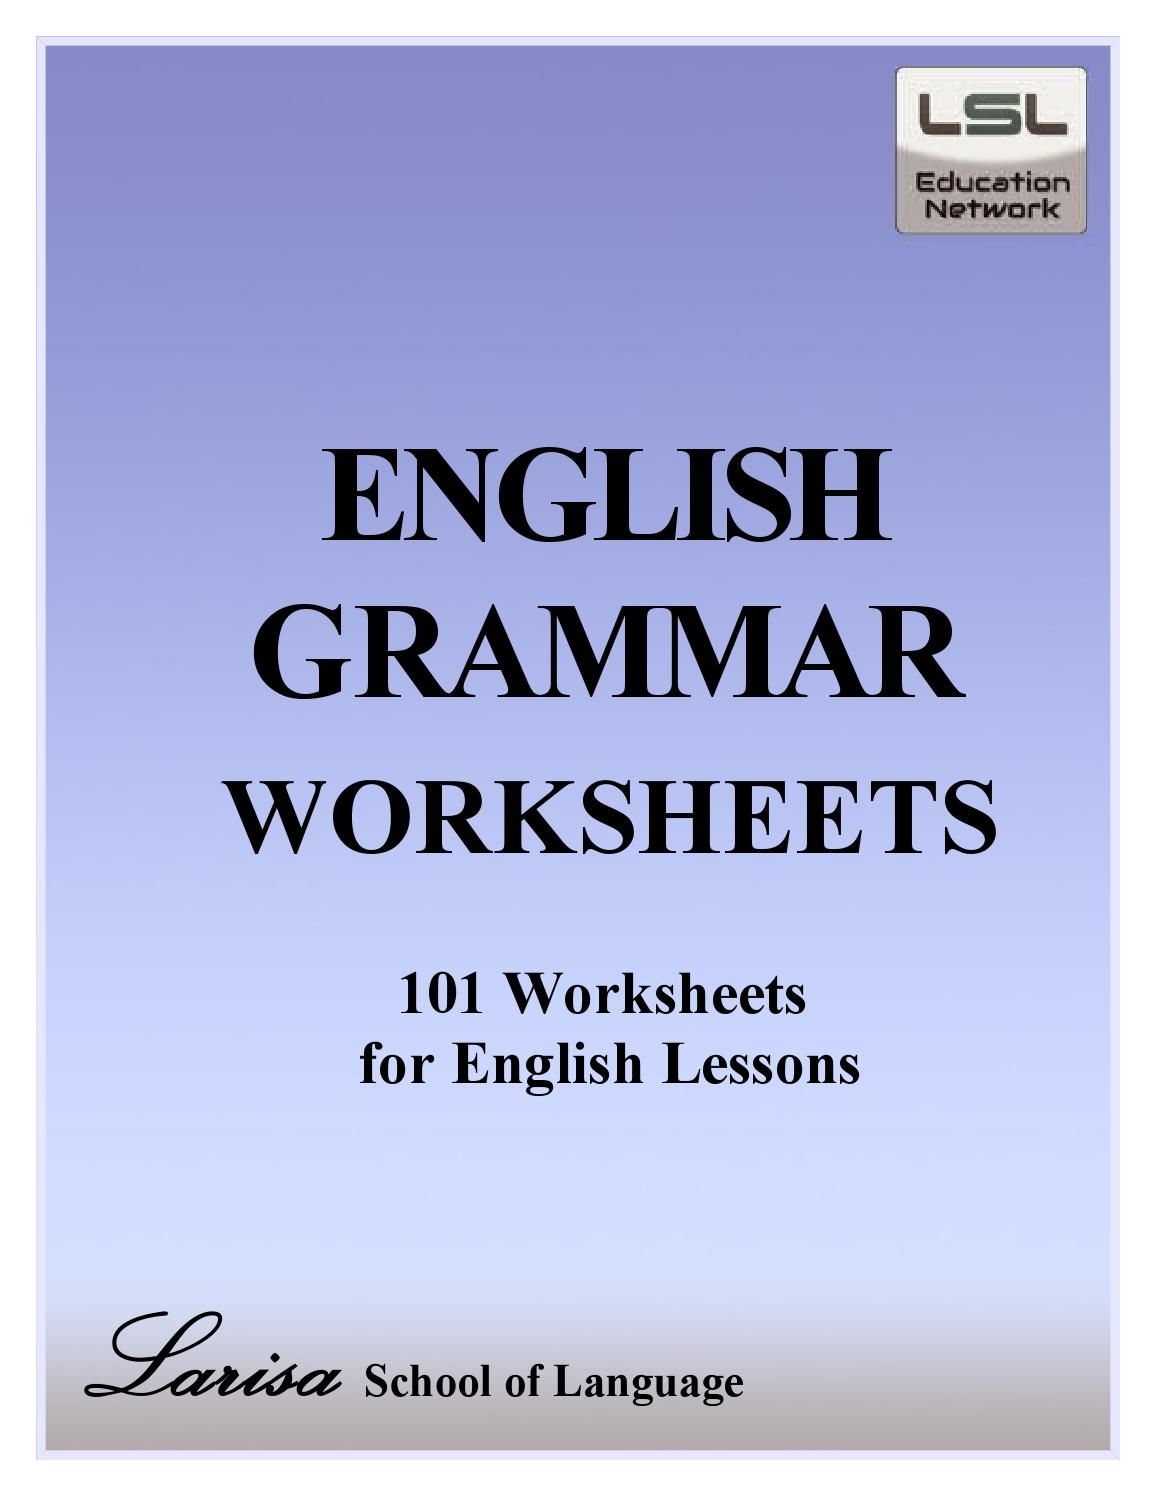 101 English Grammar Worksheets For English Learners English Grammar Worksheets English Grammar English Learner [ 1496 x 1156 Pixel ]